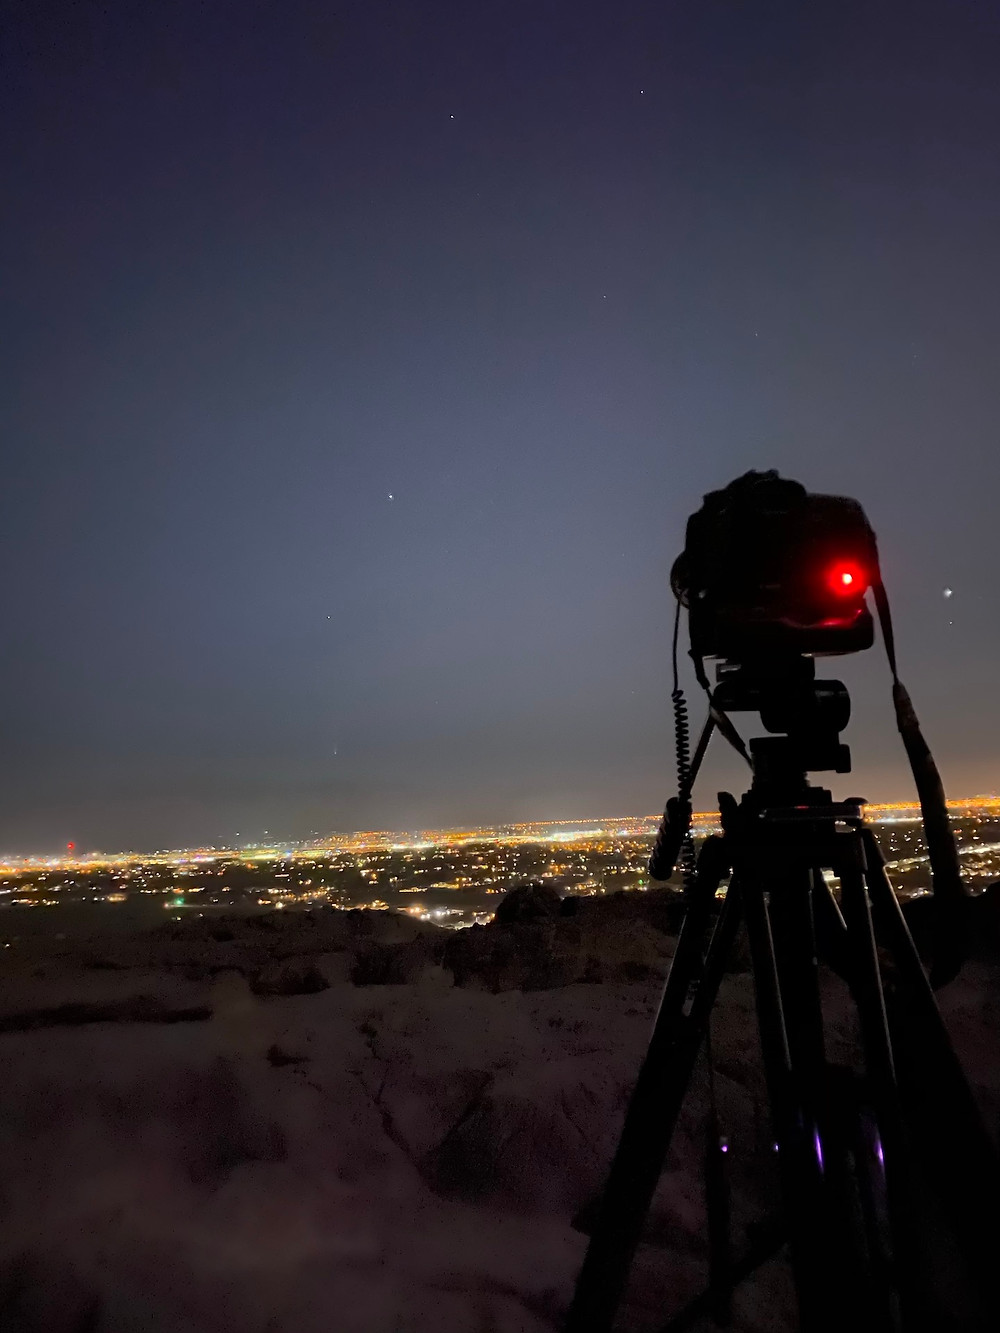 DSLR and tripod with lens to photograph a comet